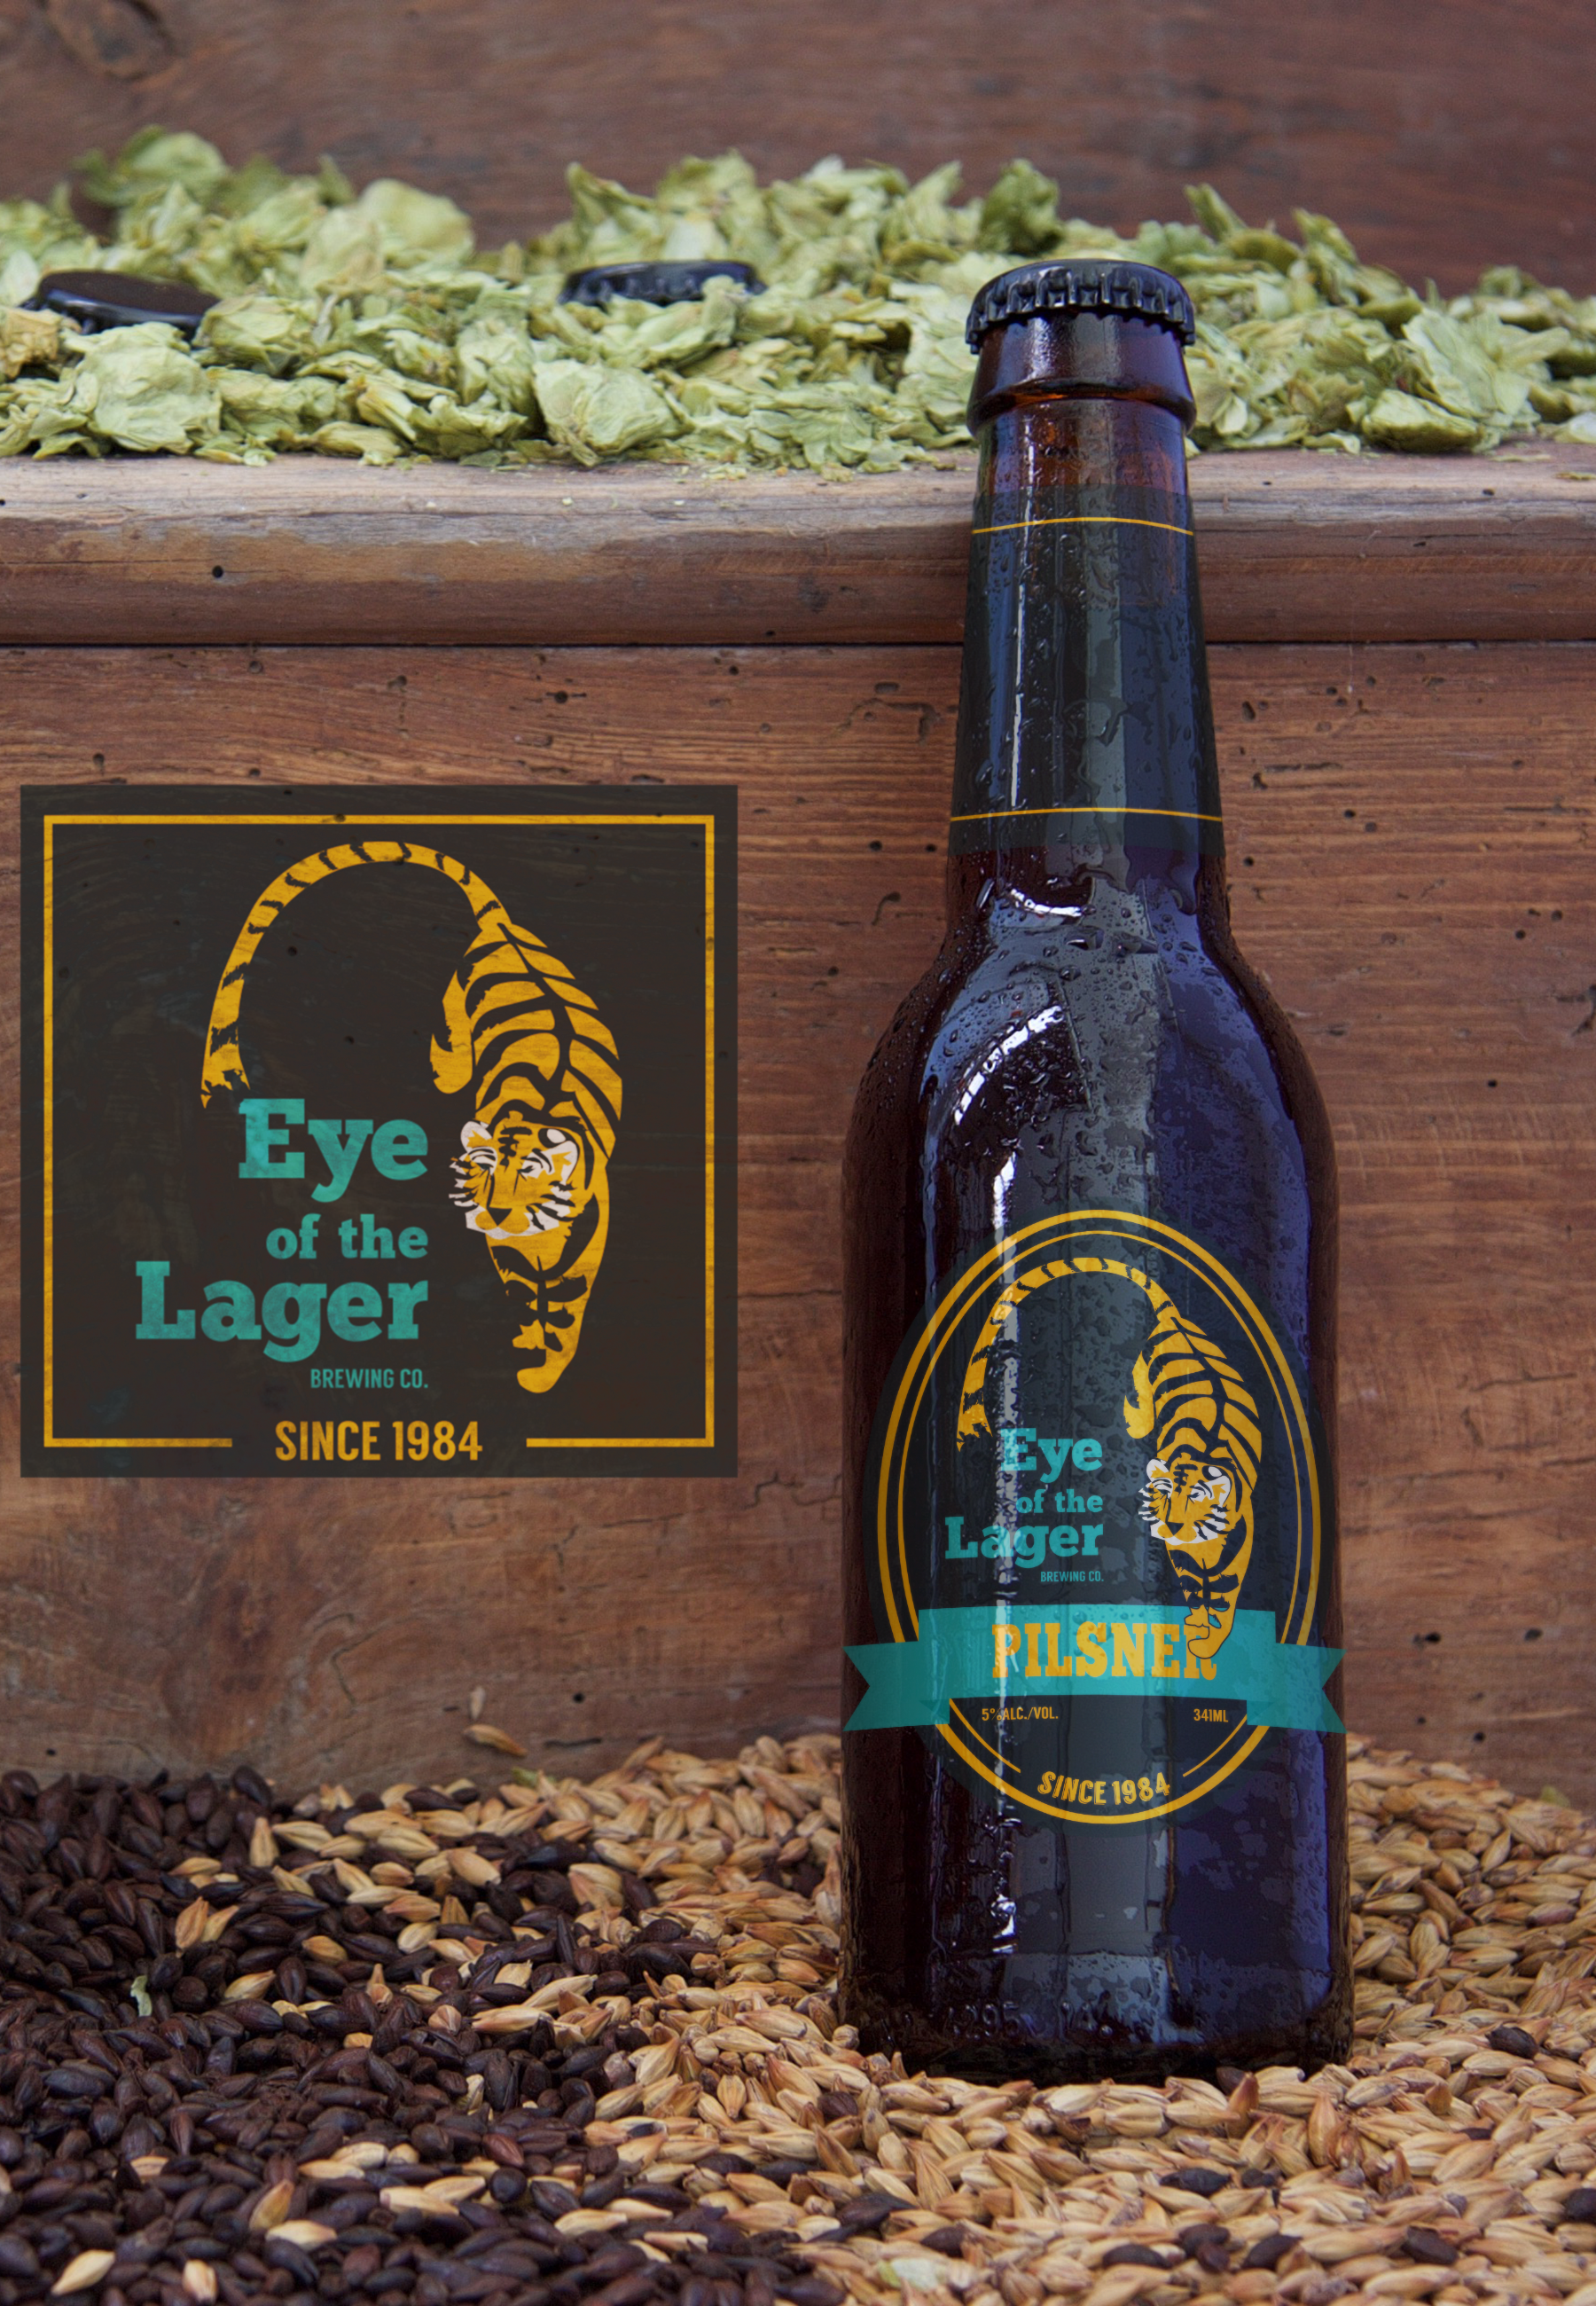 beer label - Eye of the Lager | Beer Label created for fictional brand.